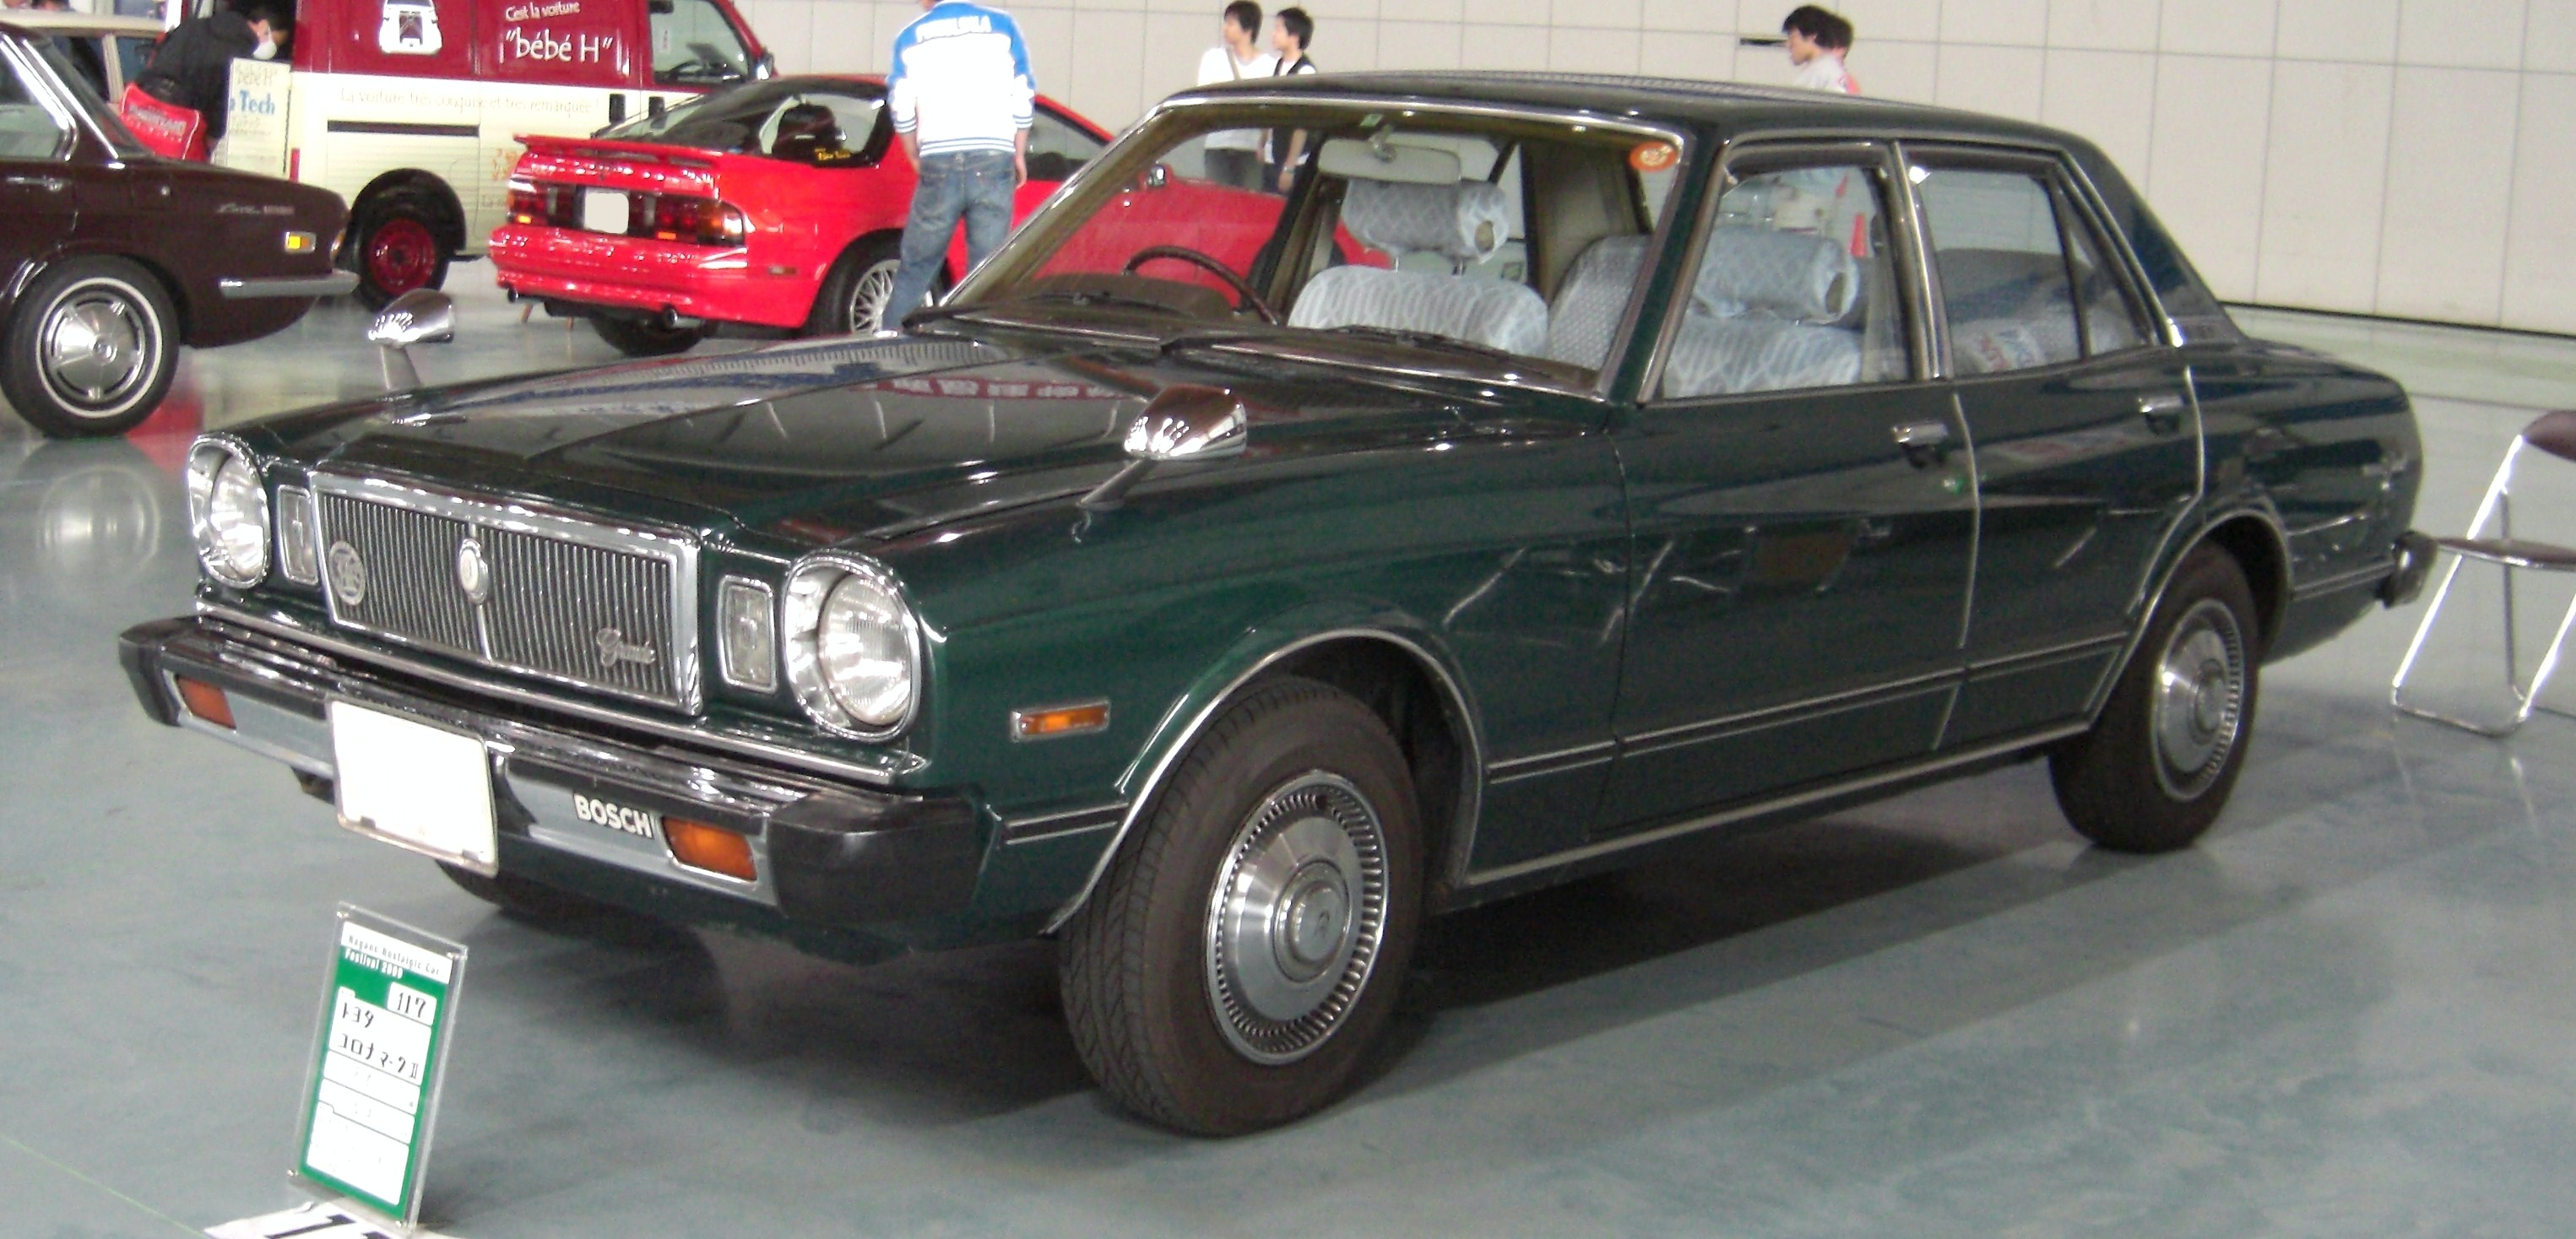 Toyota Mark II 1982 photo - 4